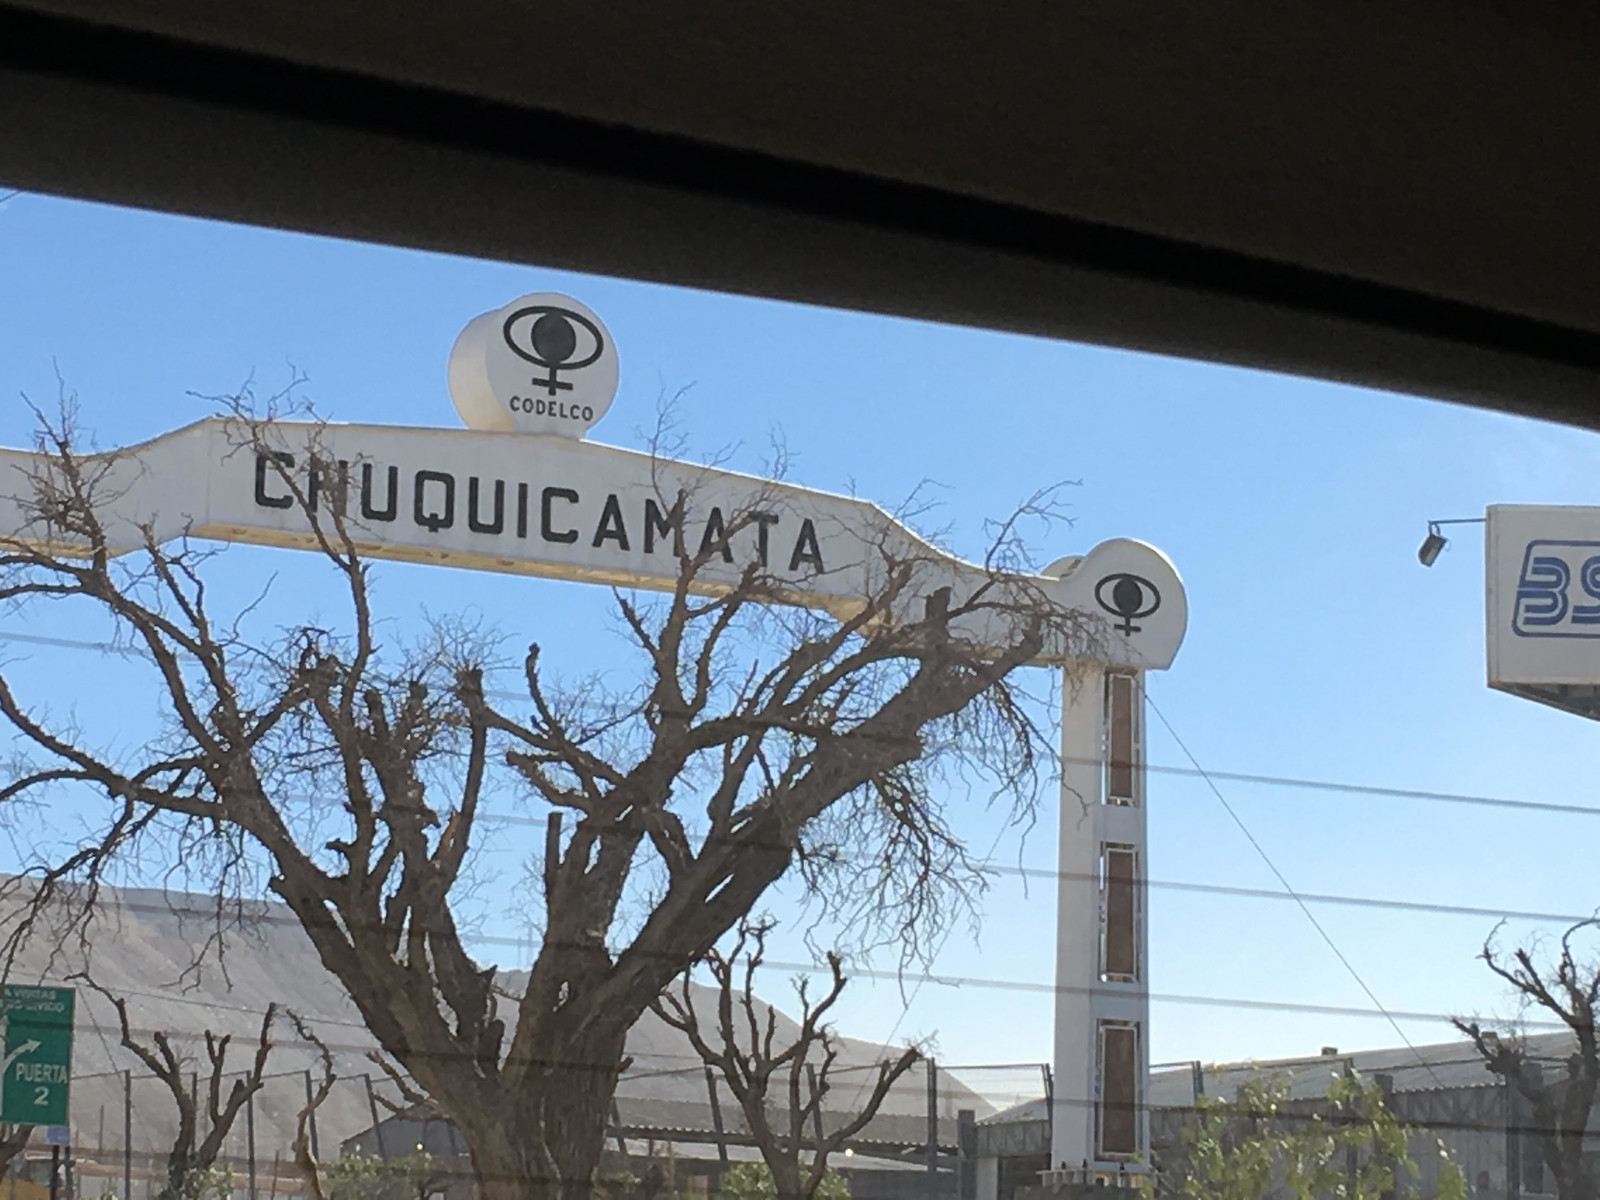 Chuquicamata sign